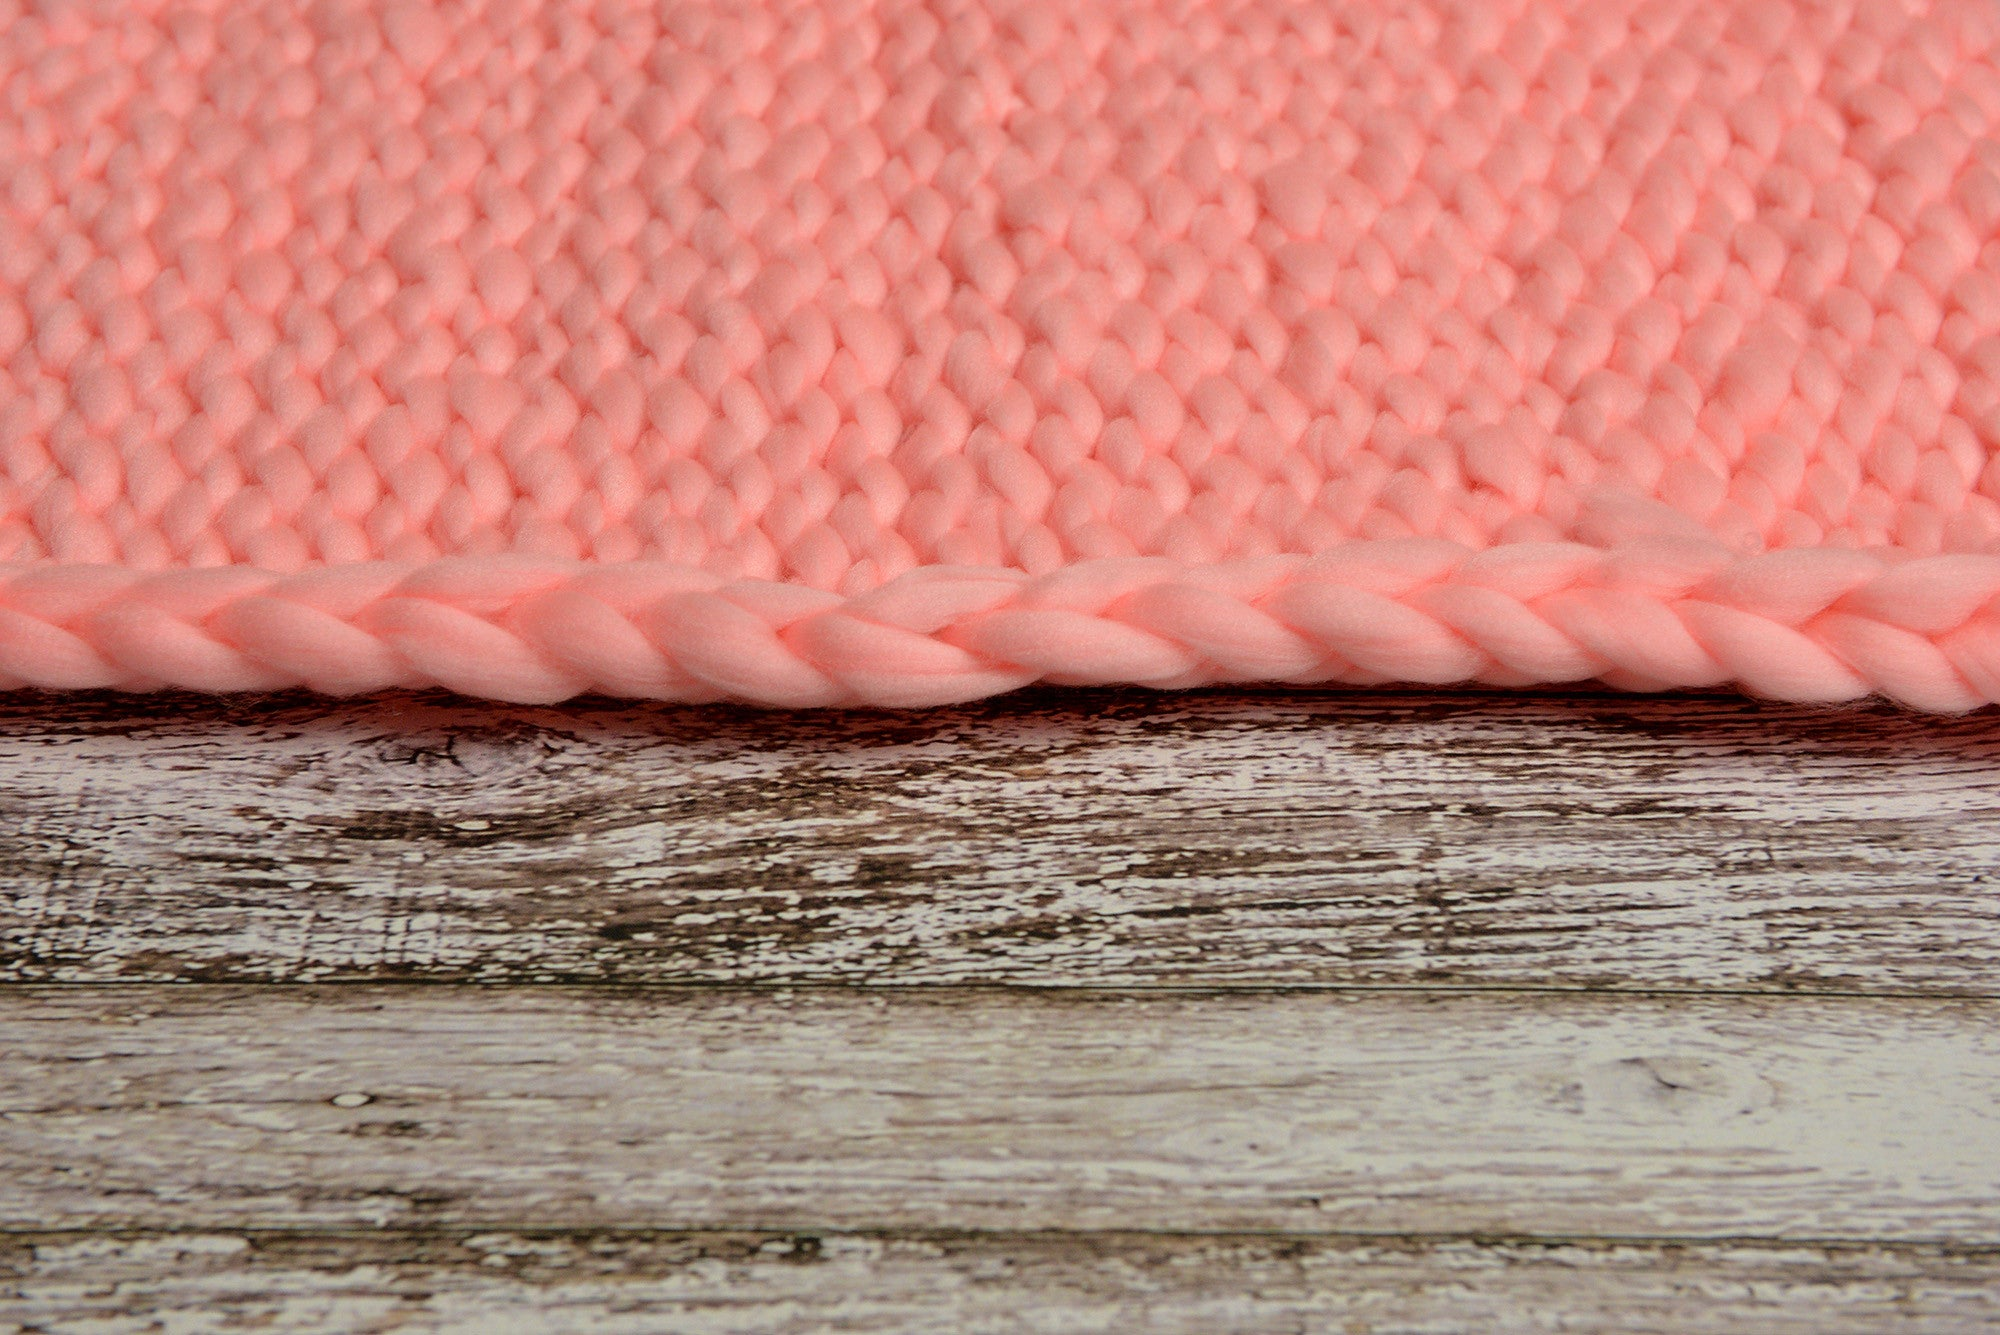 Knitted Thick Yarn Blanket - Pink-Newborn Photography Props